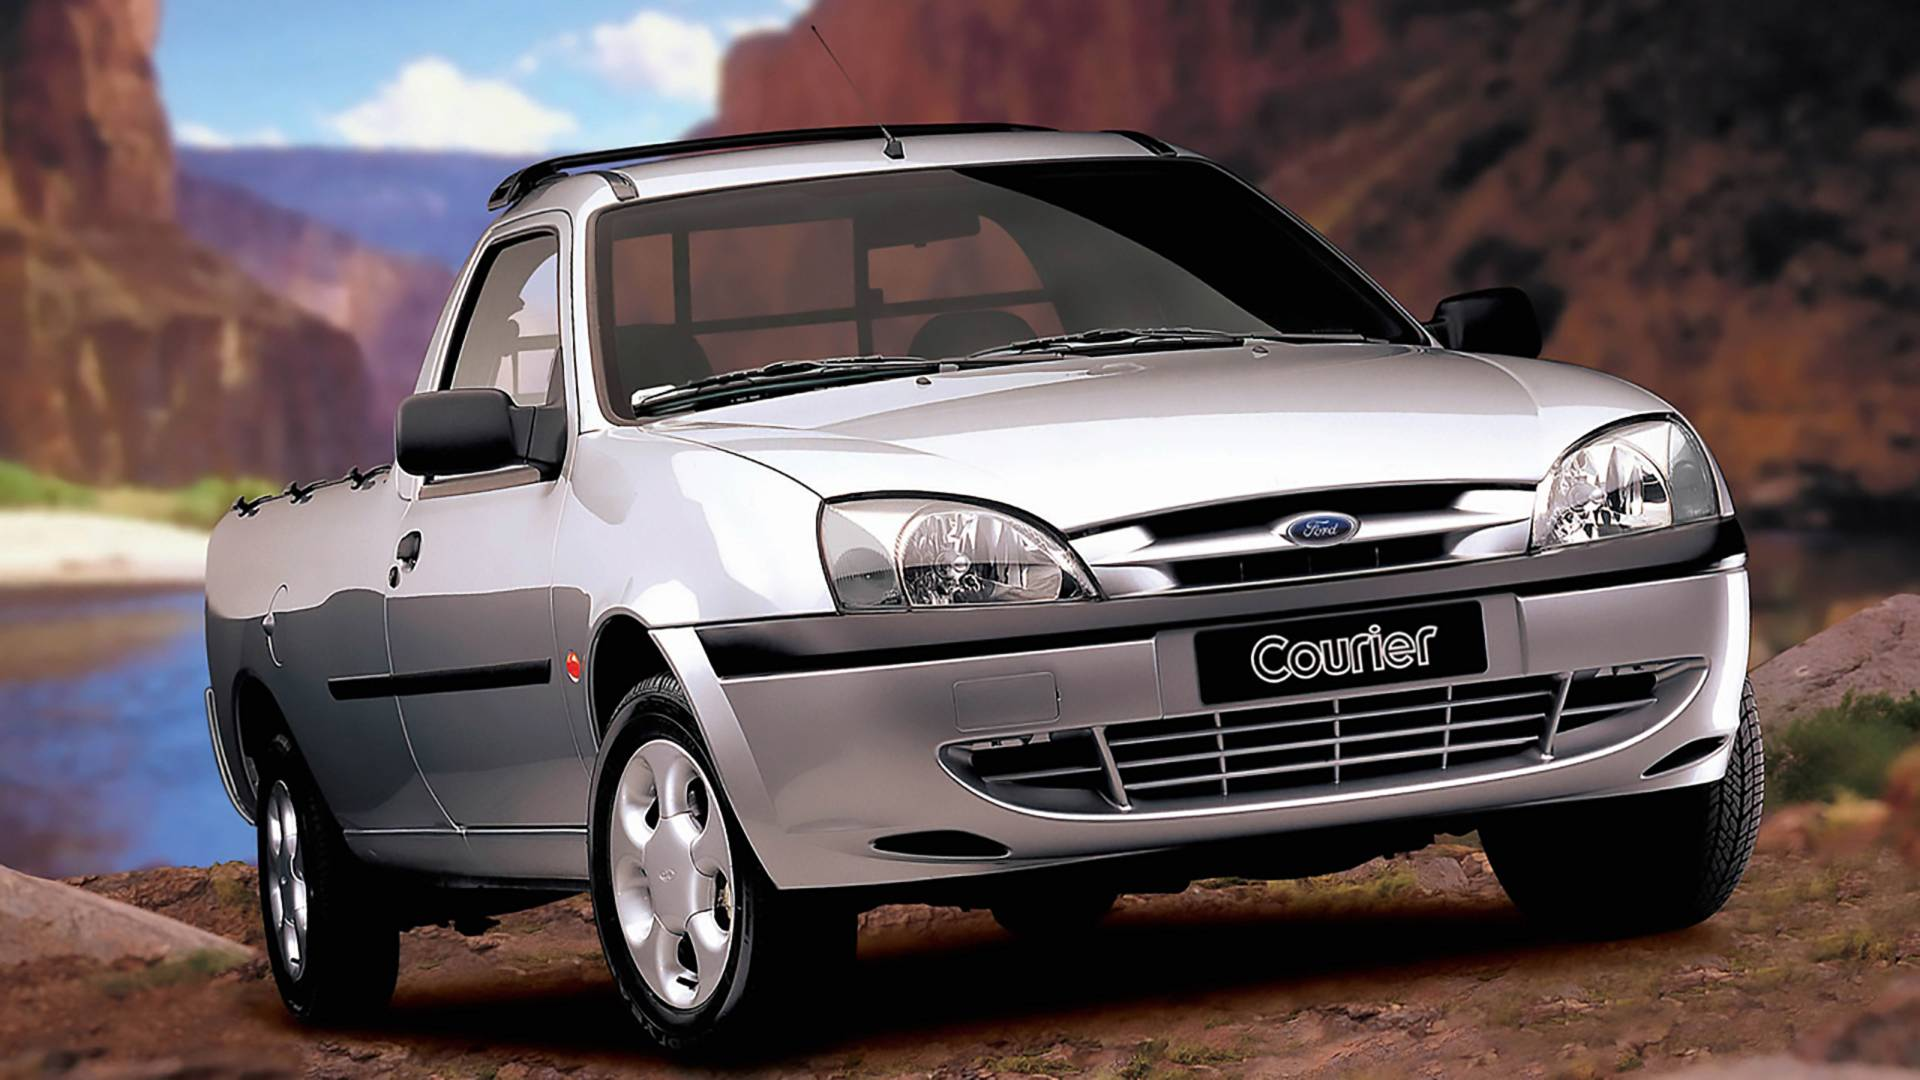 Ford focus based pickup rumor fueled by courier trademark filing